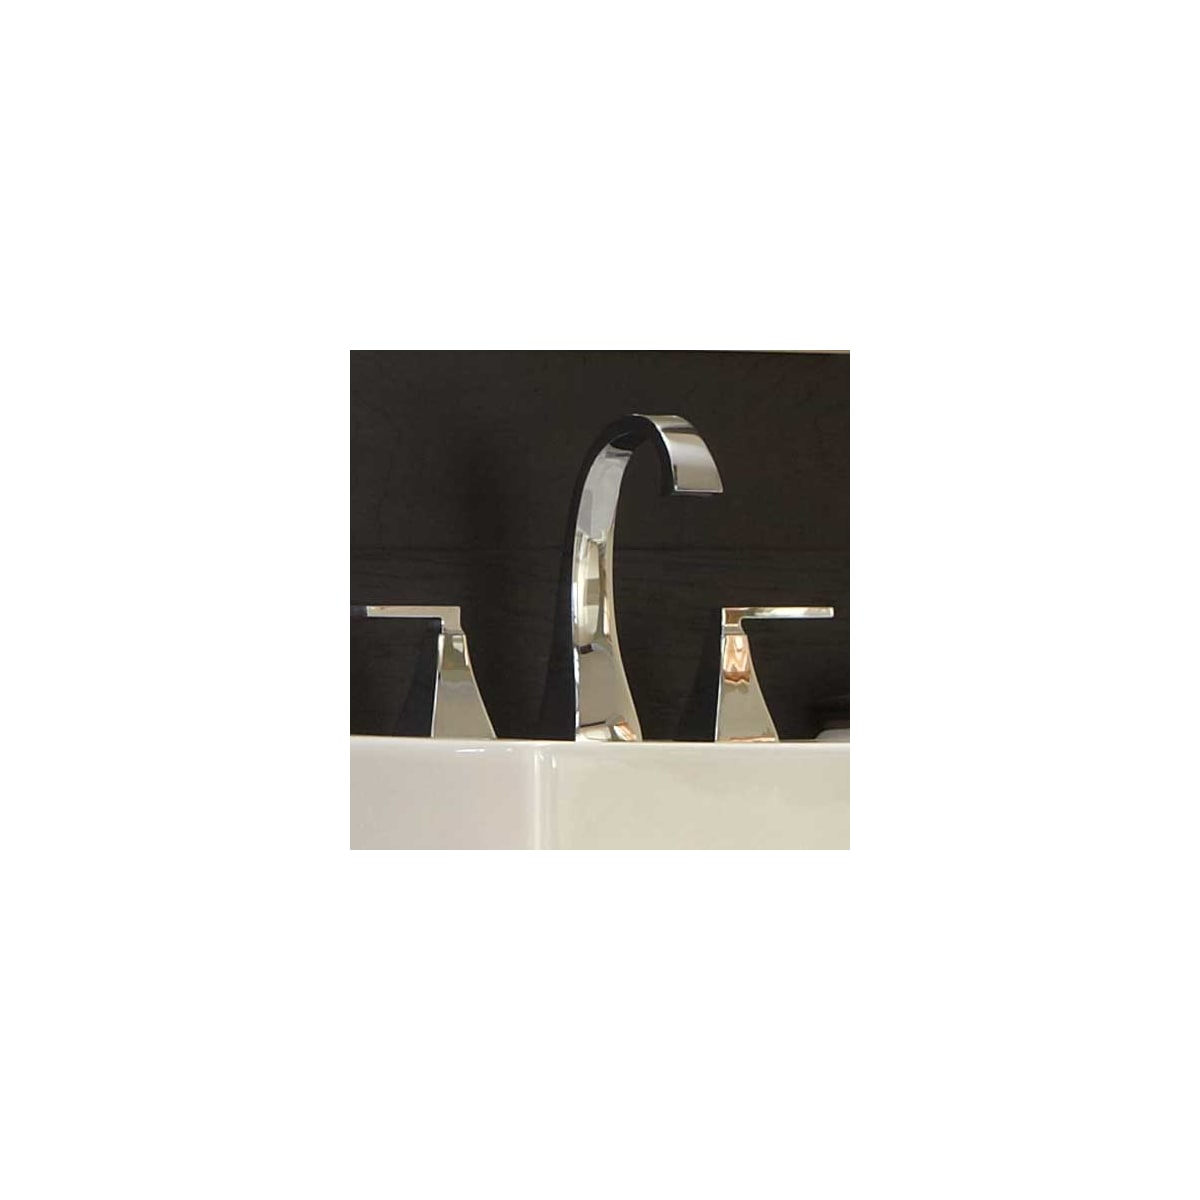 Mirabelle MIRWSVL800BN Brushed Nickel Vilamonte Widespread Bathroom ...